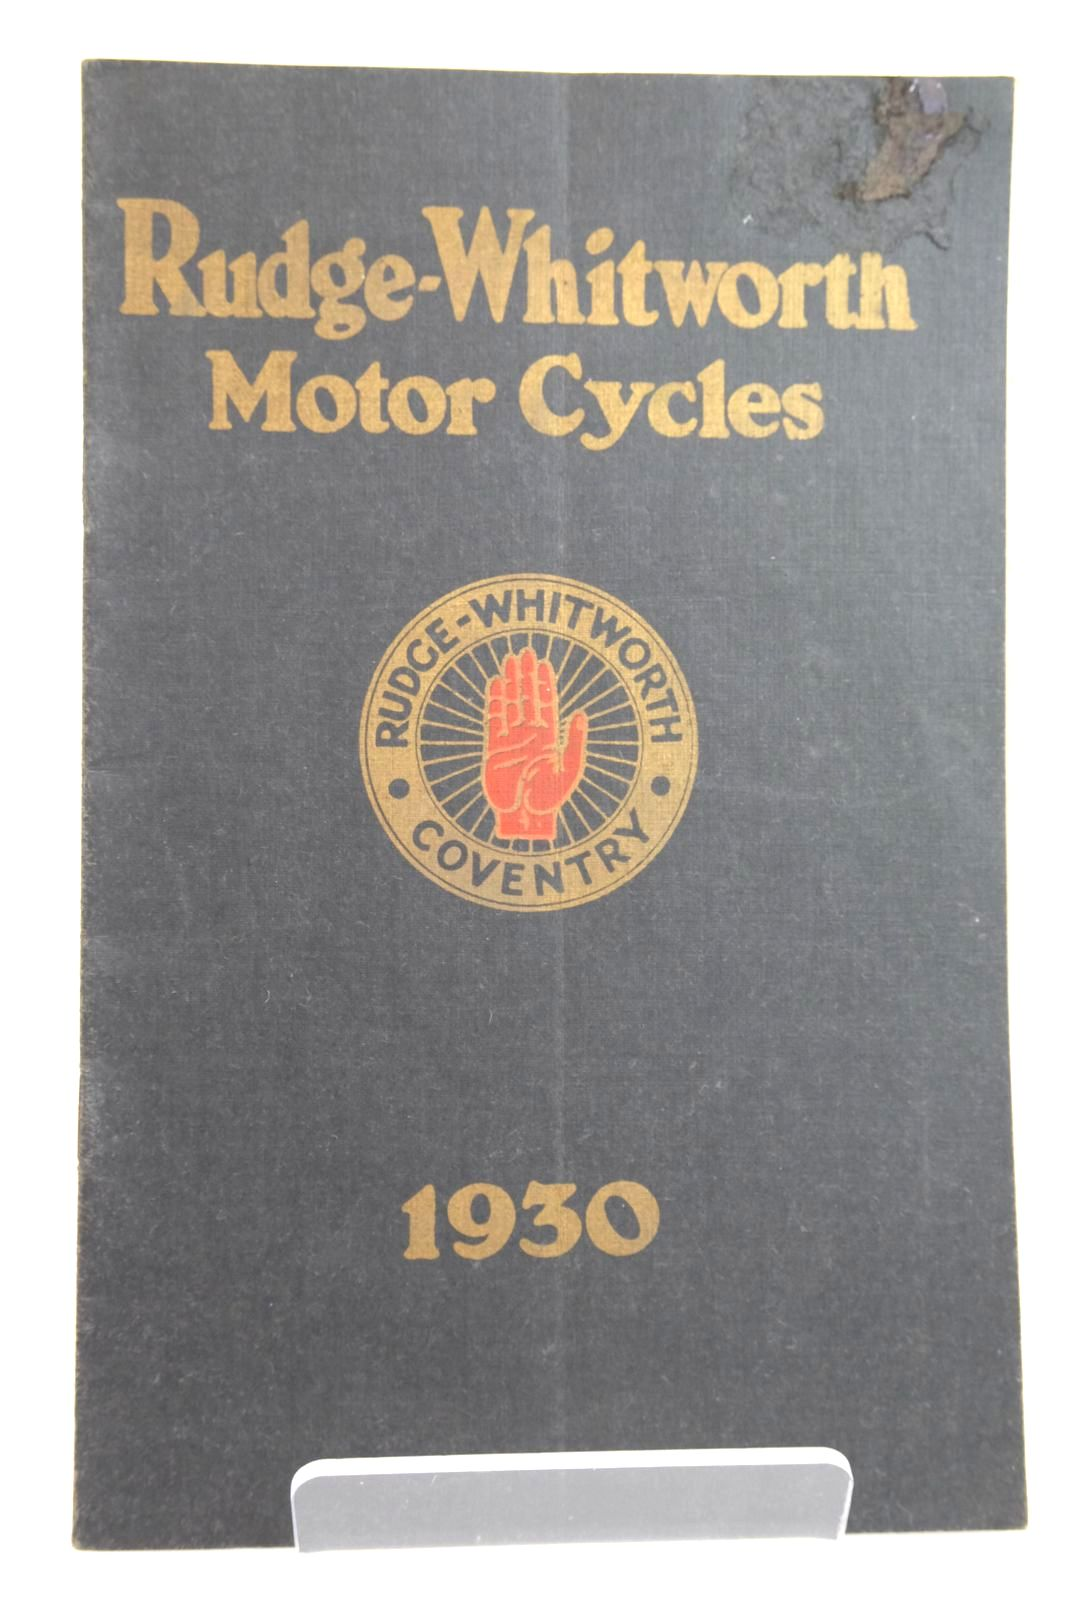 Photo of RUDGE-WHITWORTH 1930 MOTOR CYCLE CATALOGUE- Stock Number: 2133204